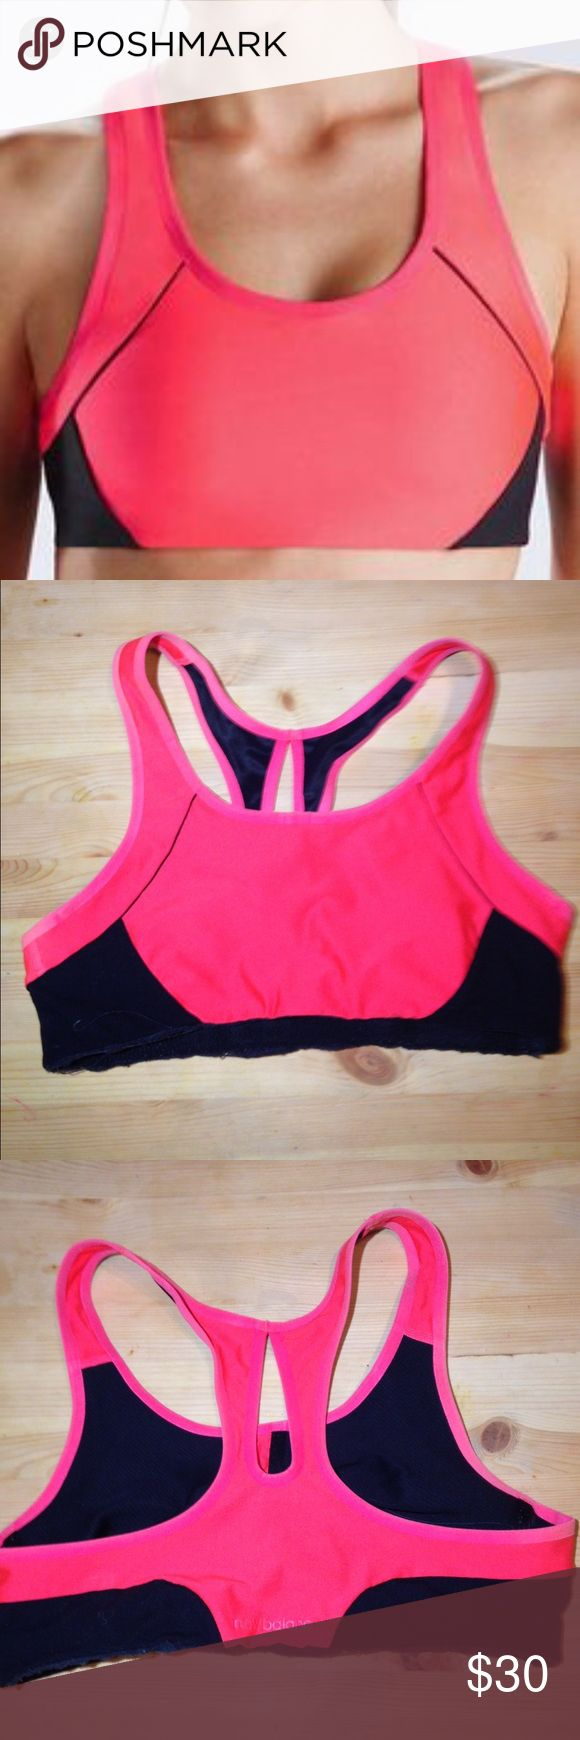 ❤️36B Full Support New Balance Sports Bra ❤️❤️🎈Coral and Black Color• Full Support• Open Racer Back• Brand: New Balance• Size: 36 B cup• comfortable• pet smoke stain free• New Balance Intimates & Sleepwear Bras